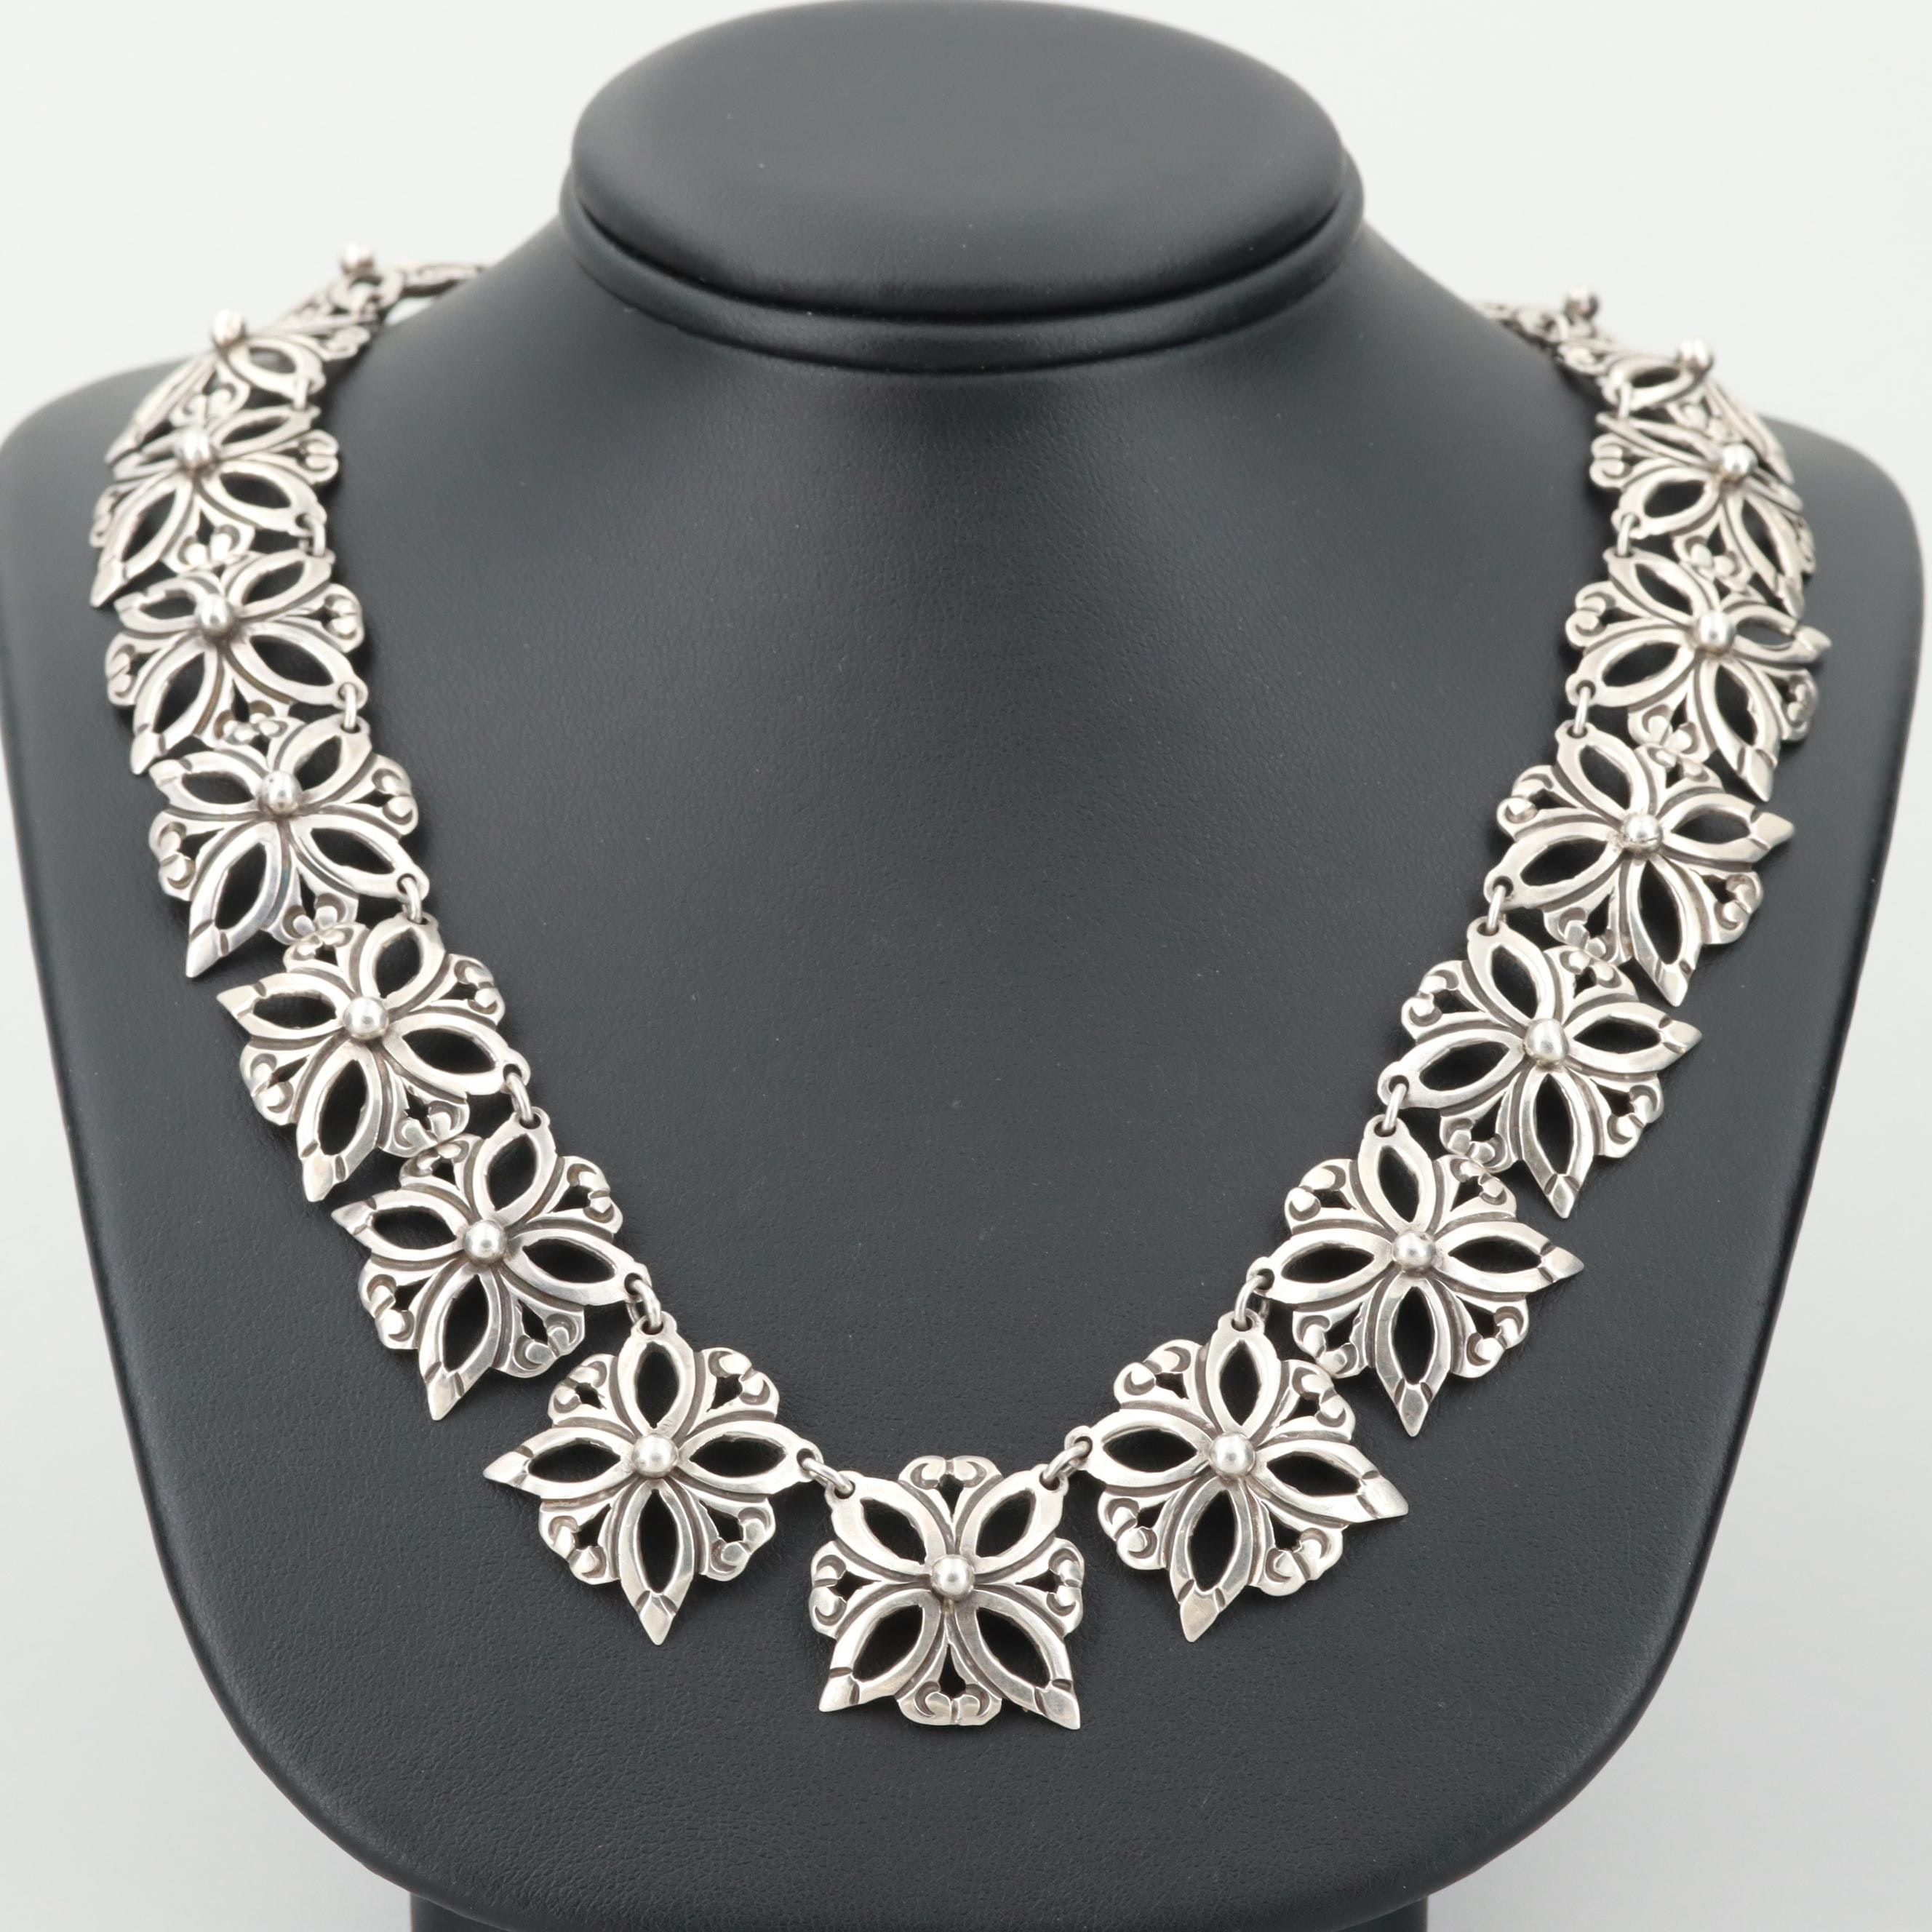 Mexican Sterling Silver Link Necklace Attribute to M.Ocampo